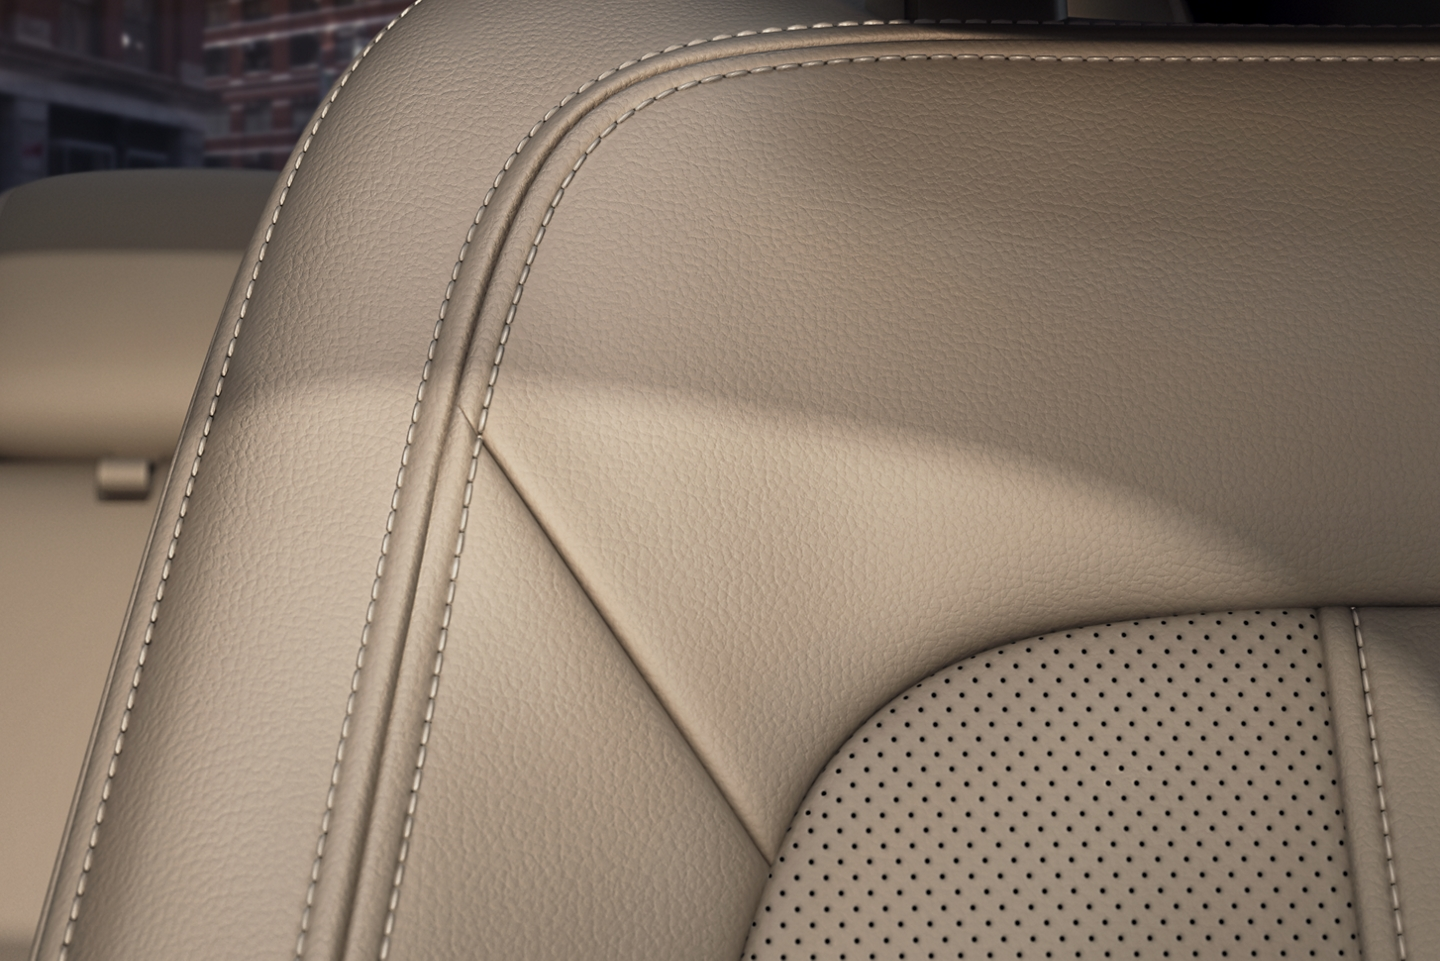 The spacious interior of the 2020 Lincoln MKZ